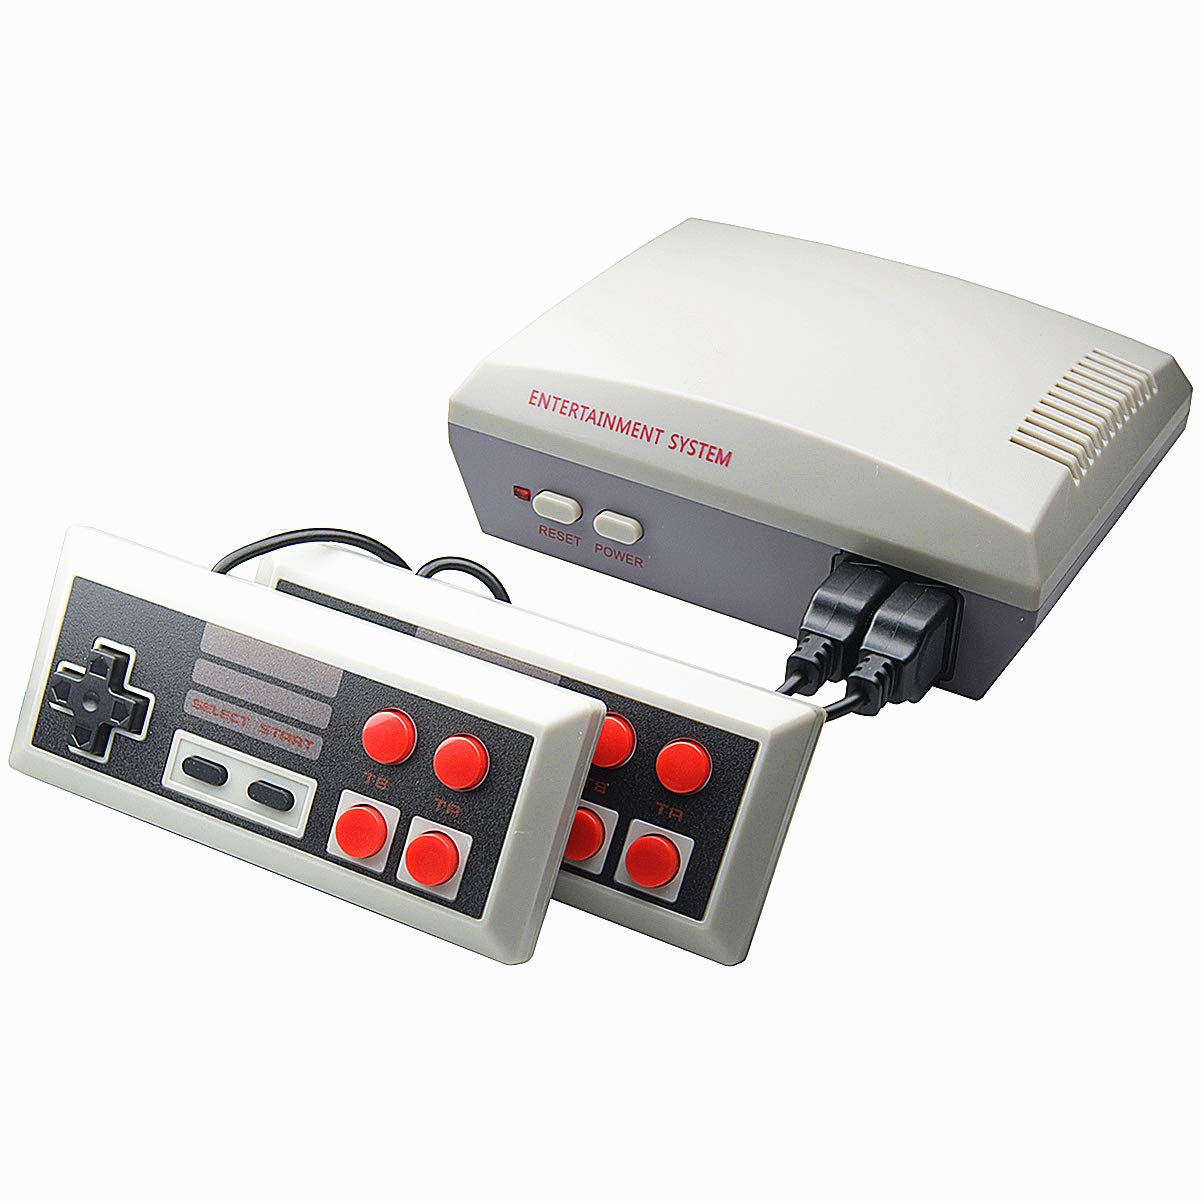 EVVE Classic Game Console Video Games - Retro 8 bit Out Support Connecting TV, Built in 256 Classic Games,Adult & Children Gifts